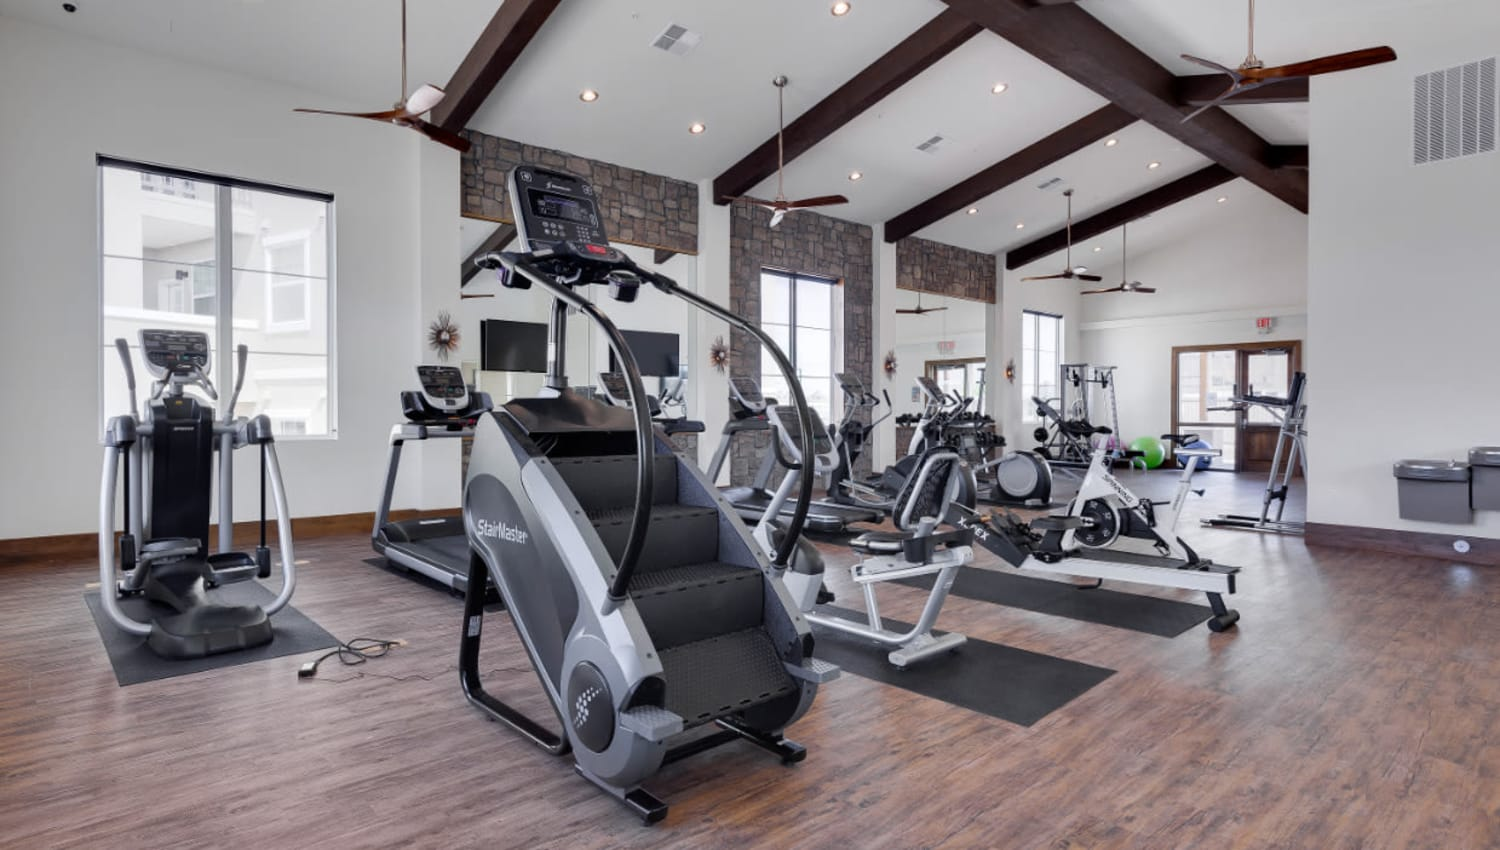 Ample equipment in the onsite fitness center at Olympus Rodeo in Santa Fe, New Mexico